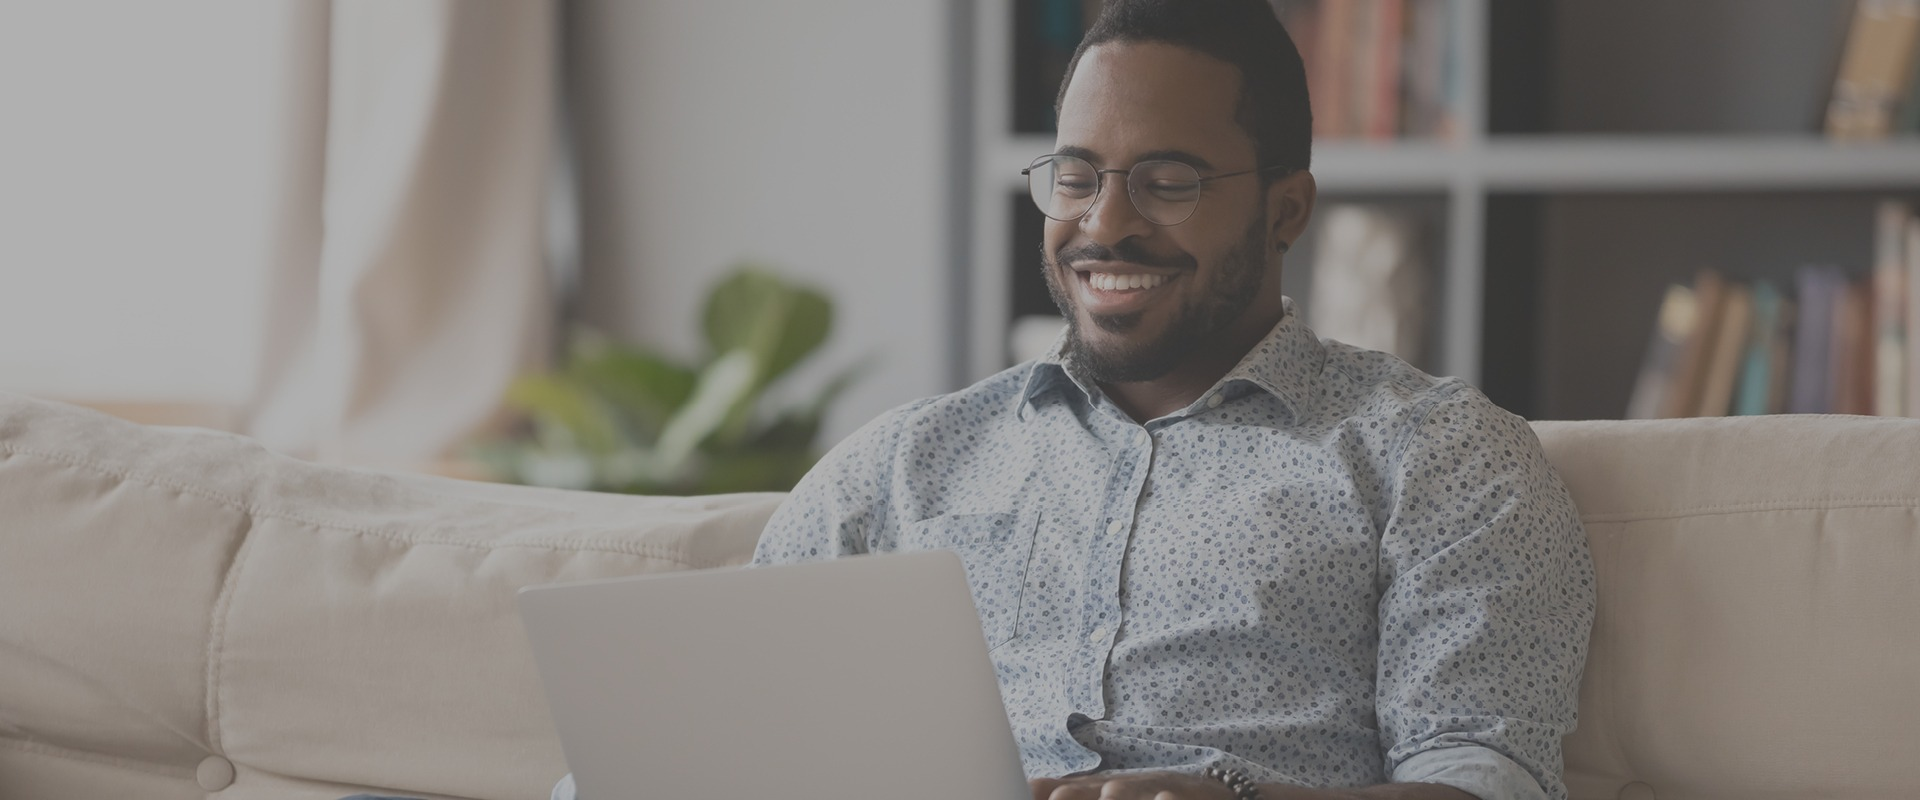 Man sitting on sofa with laptop and smiling